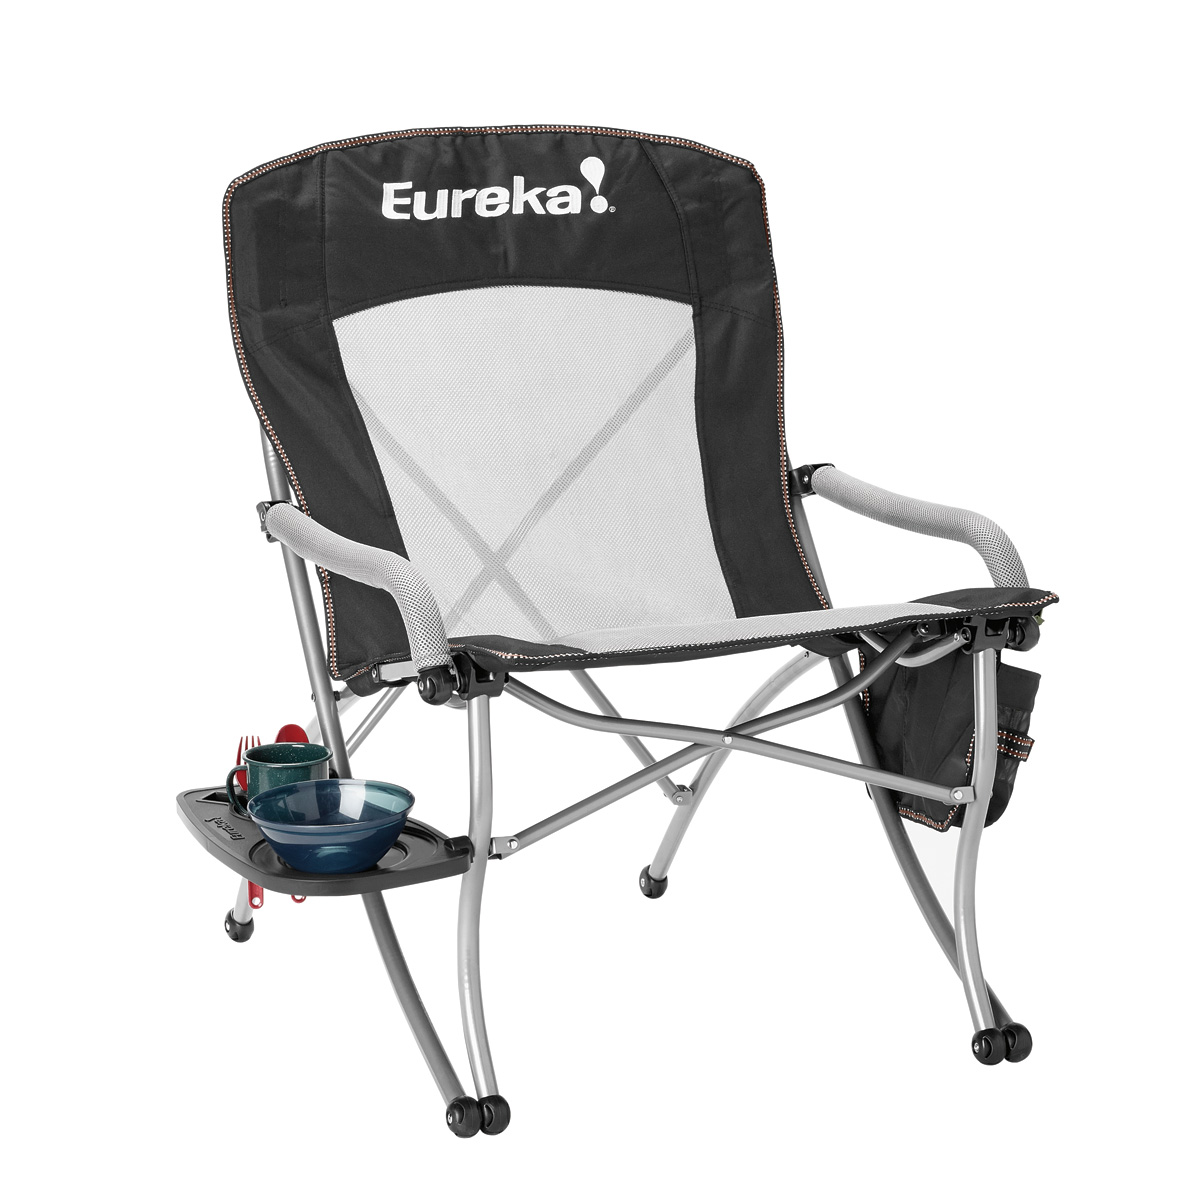 outdoor folding chair with side table hydraulic lift curvy eureka